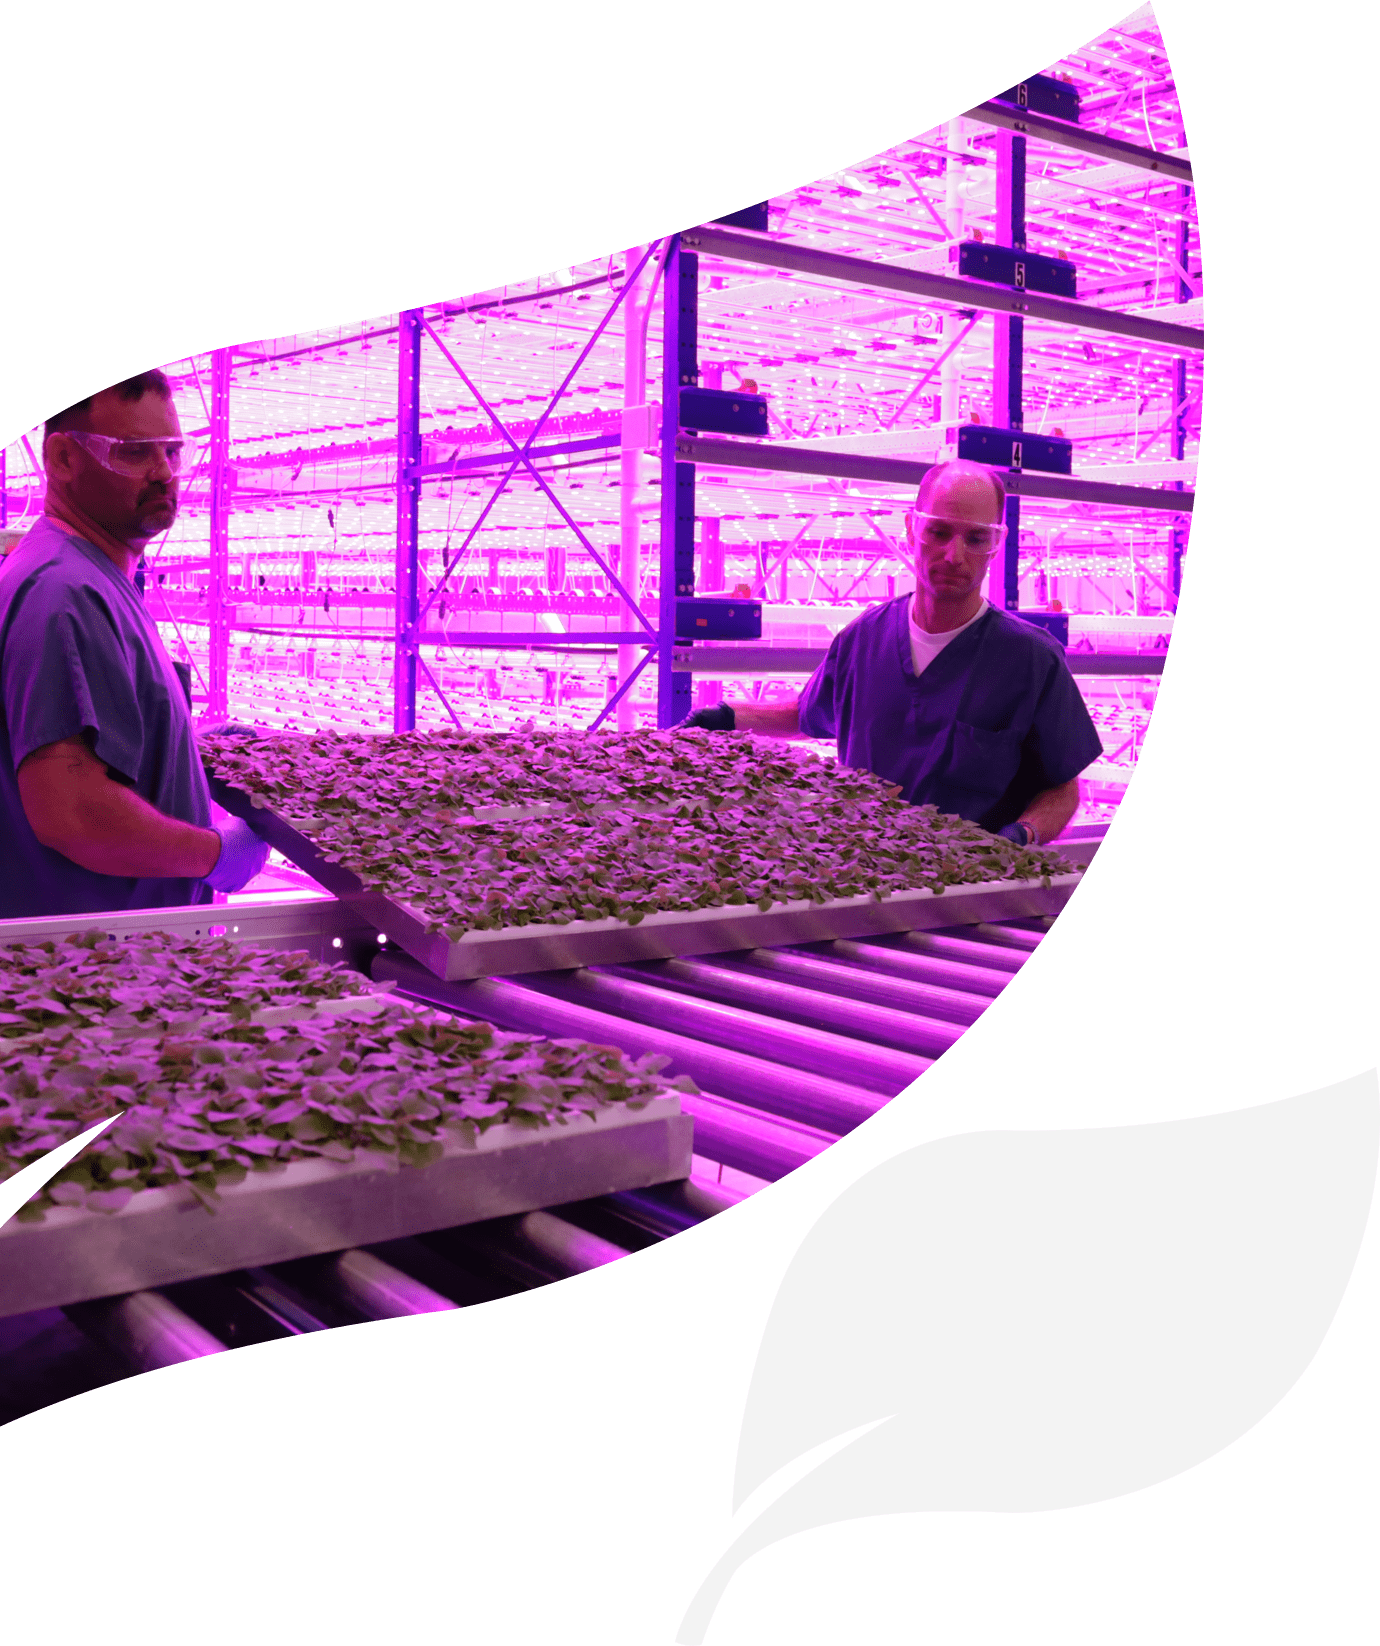 two manufacturing staff members moving a tray of plants used in iBio's facility for CDMO services